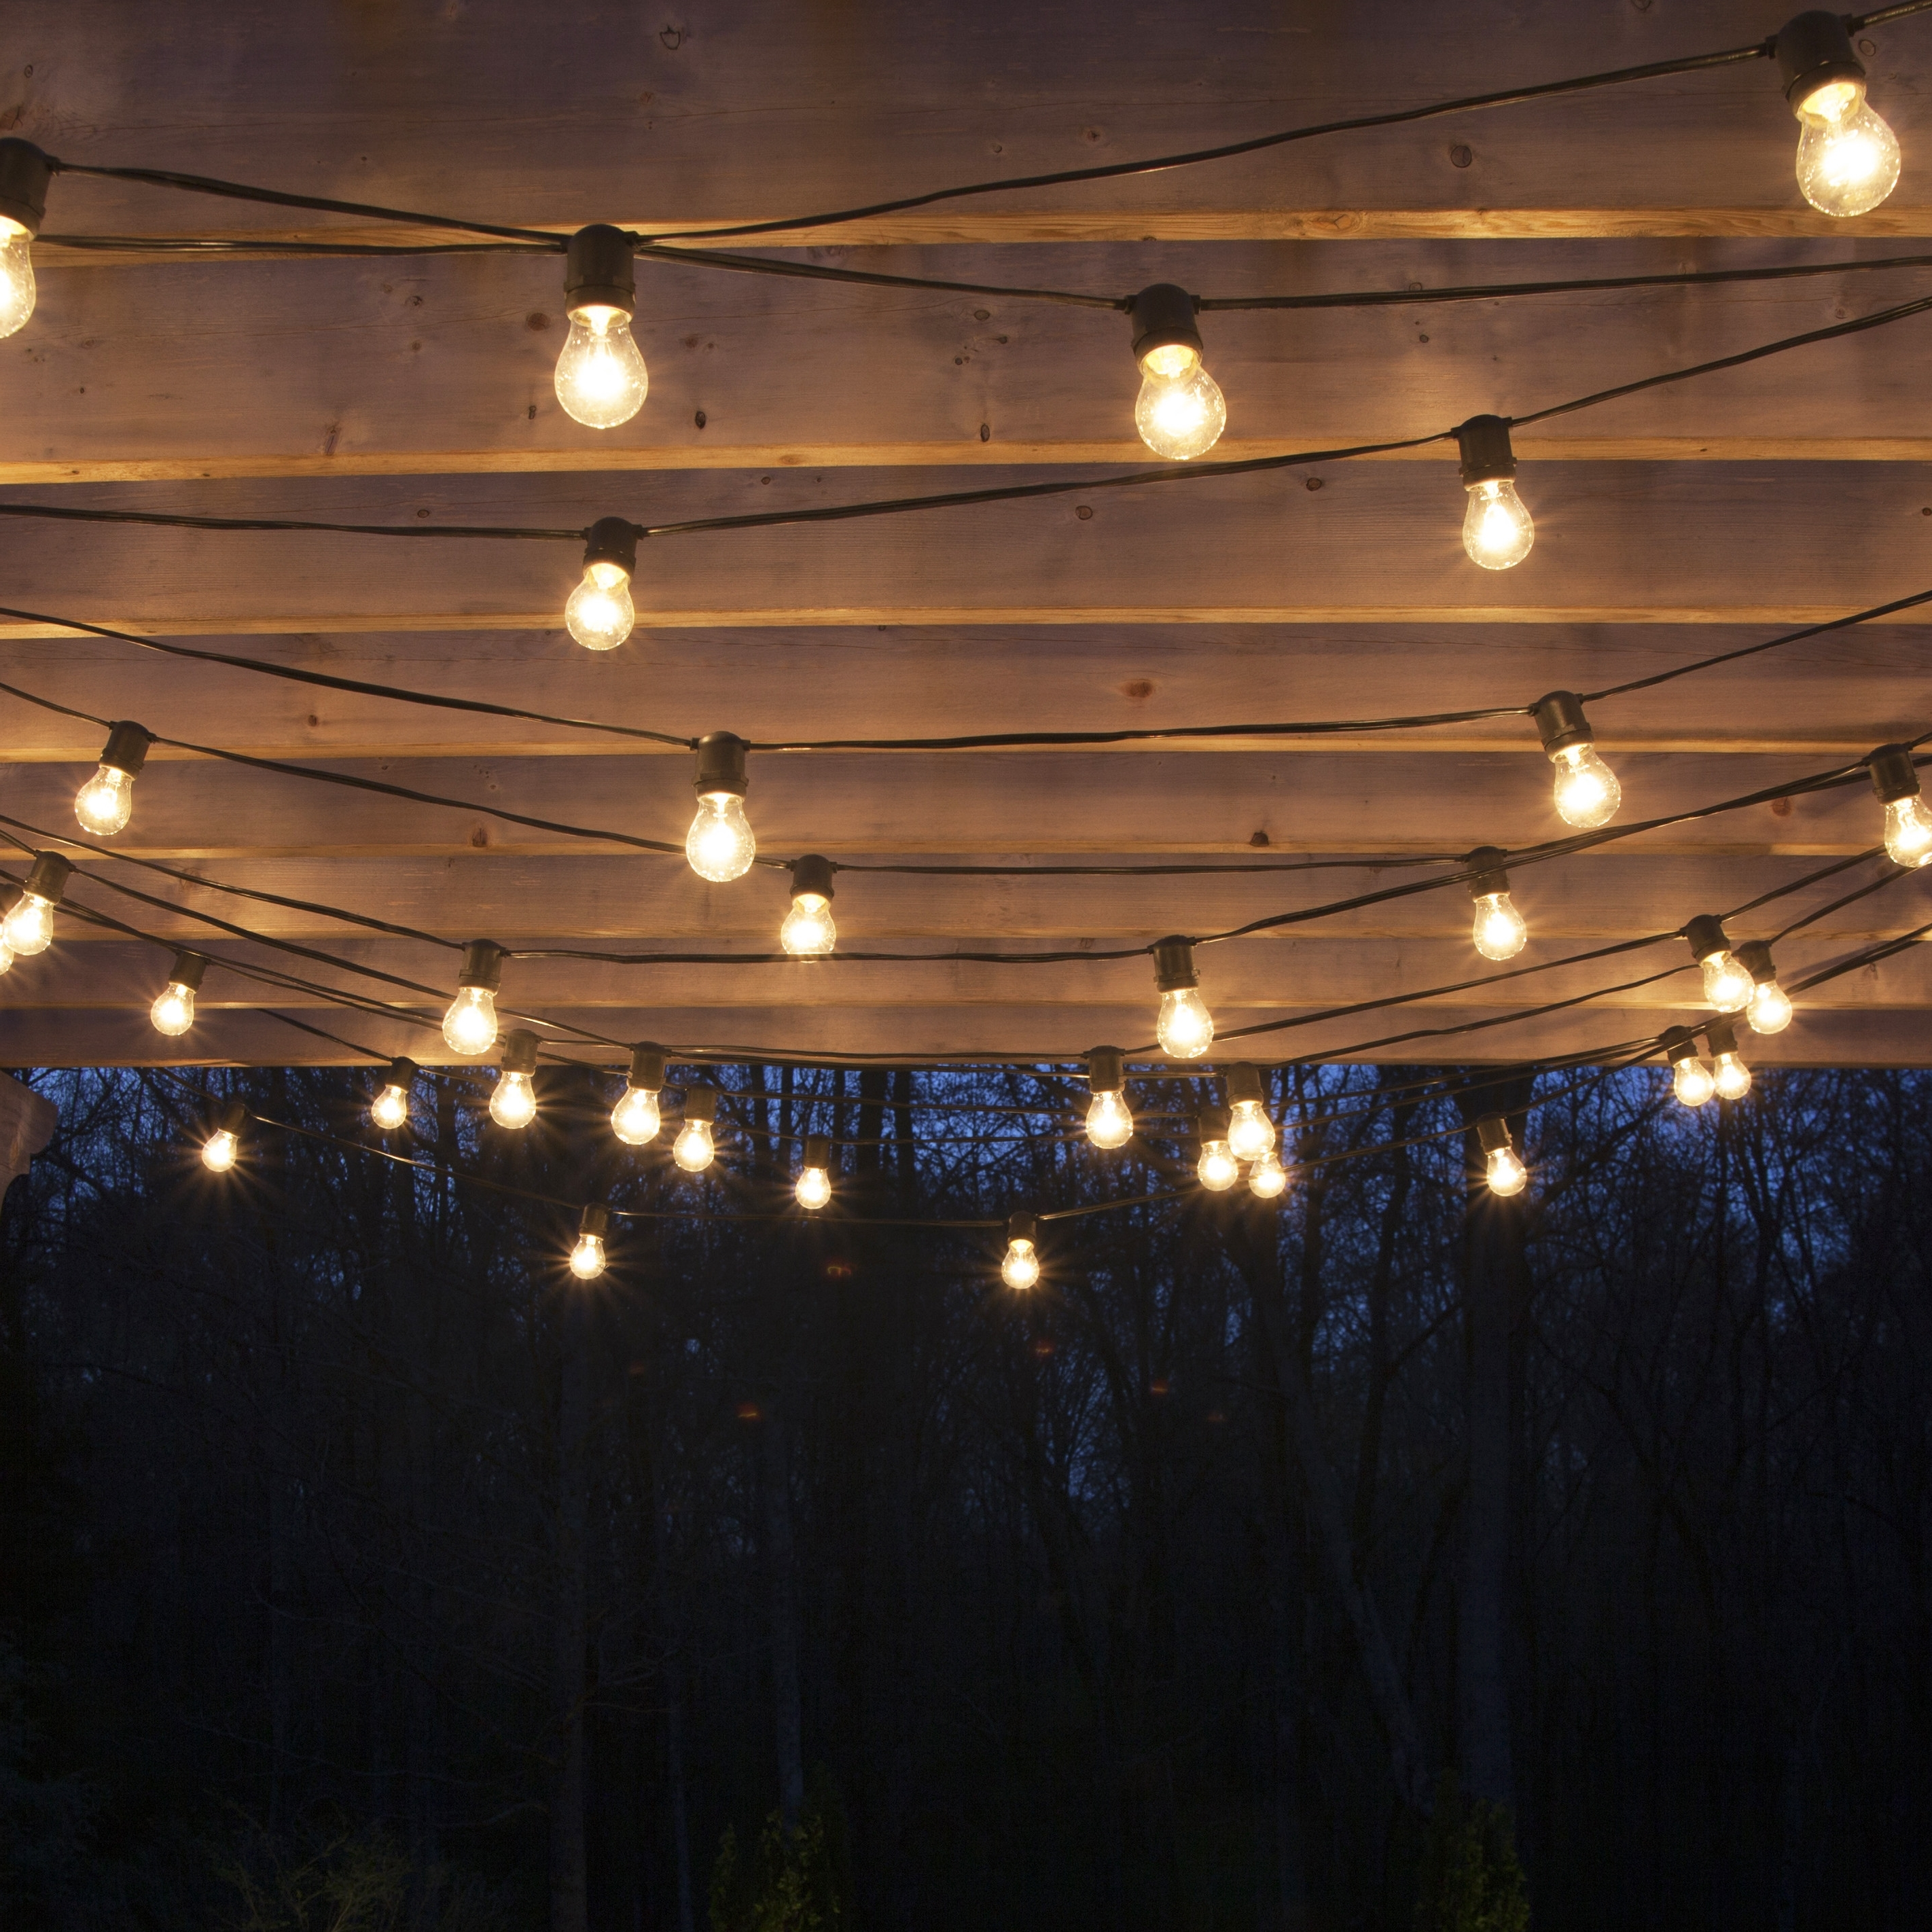 Diy : How Plan And Hang Patio Lights Lighting Pergolas Hanging With Regard To 2018 Solar Hanging Outdoor Patio Lights (View 4 of 20)